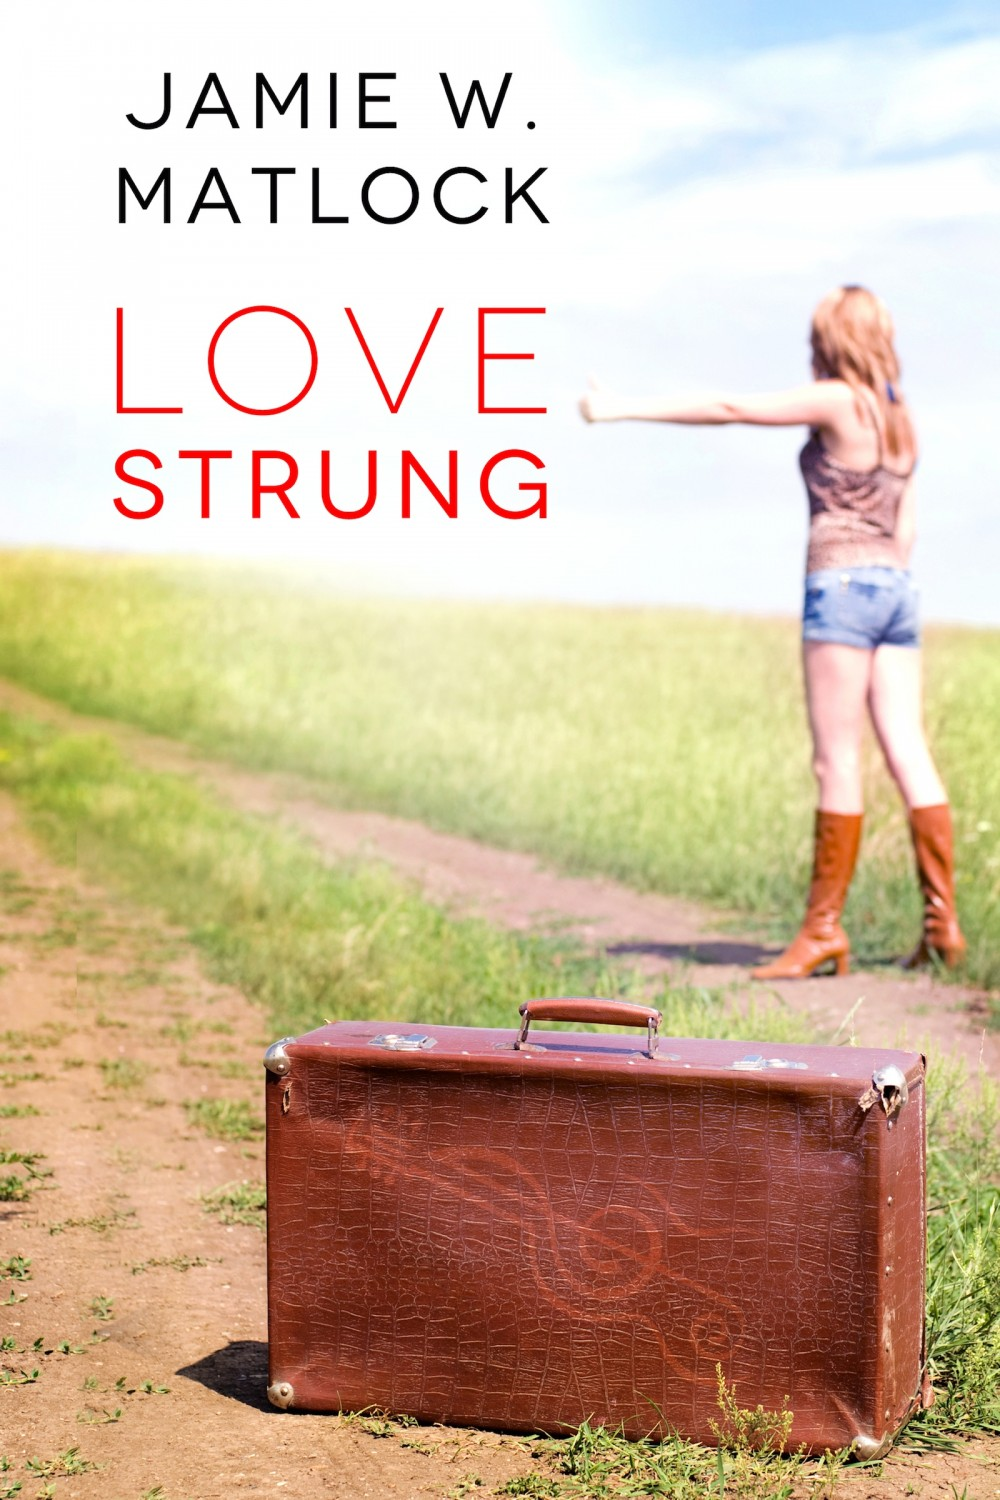 LoveStrung-FJM_High_Res_1800x2700